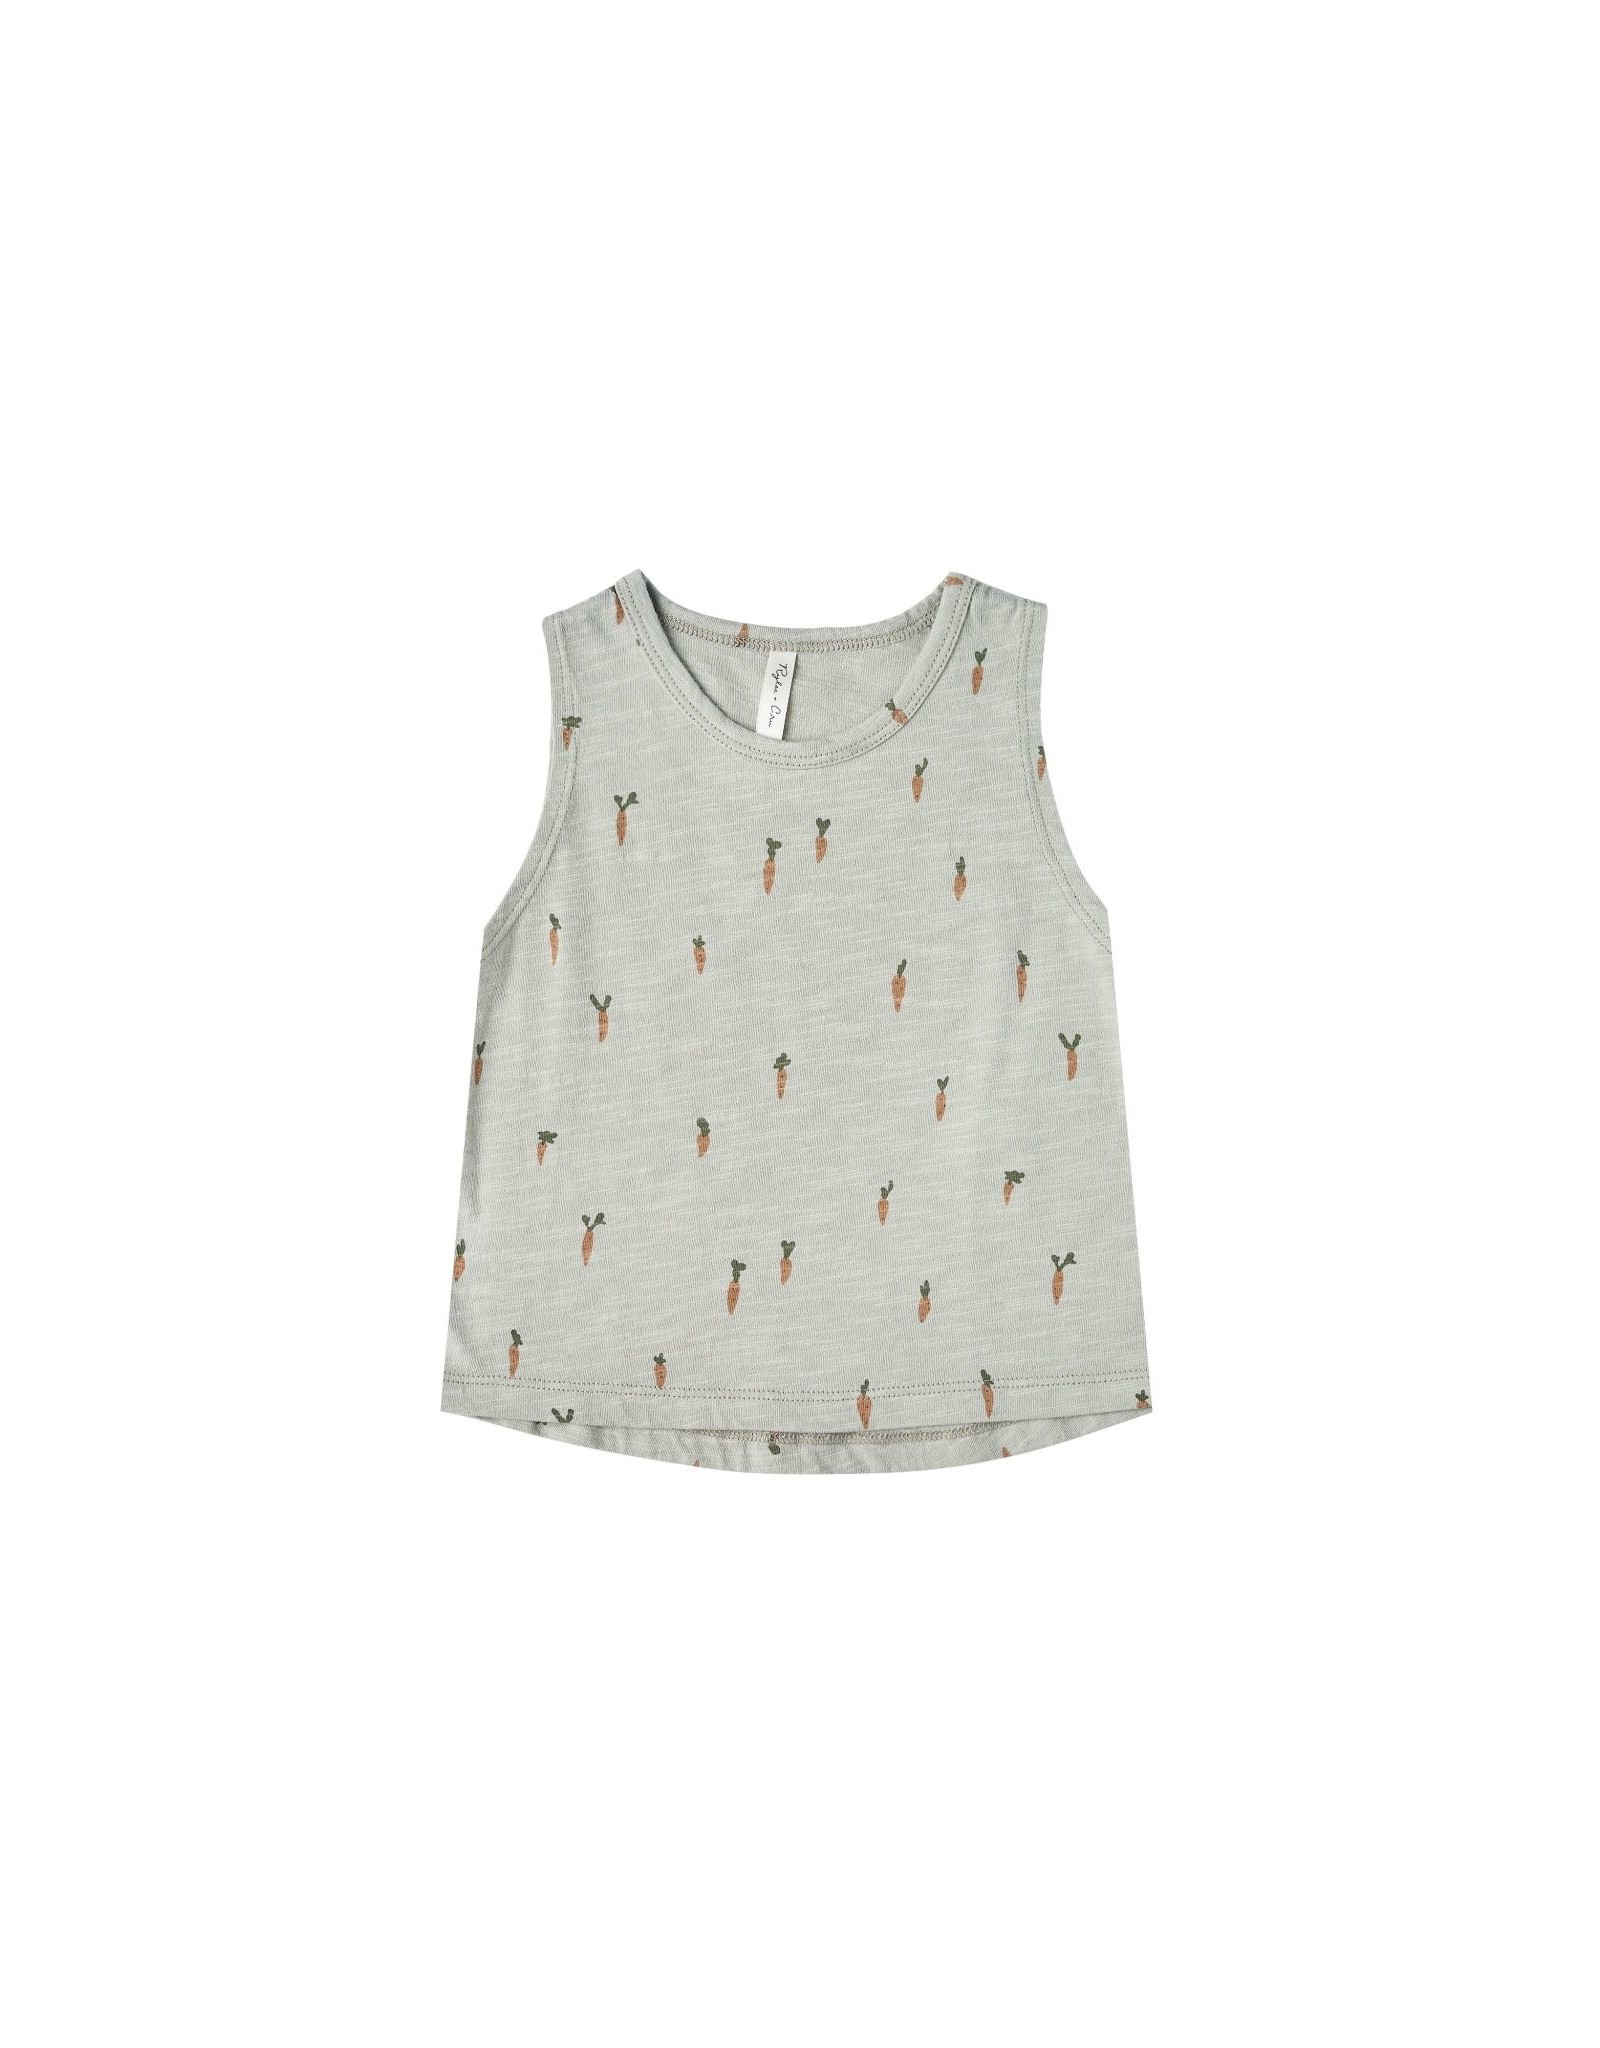 Rylee and Cru carrots tank